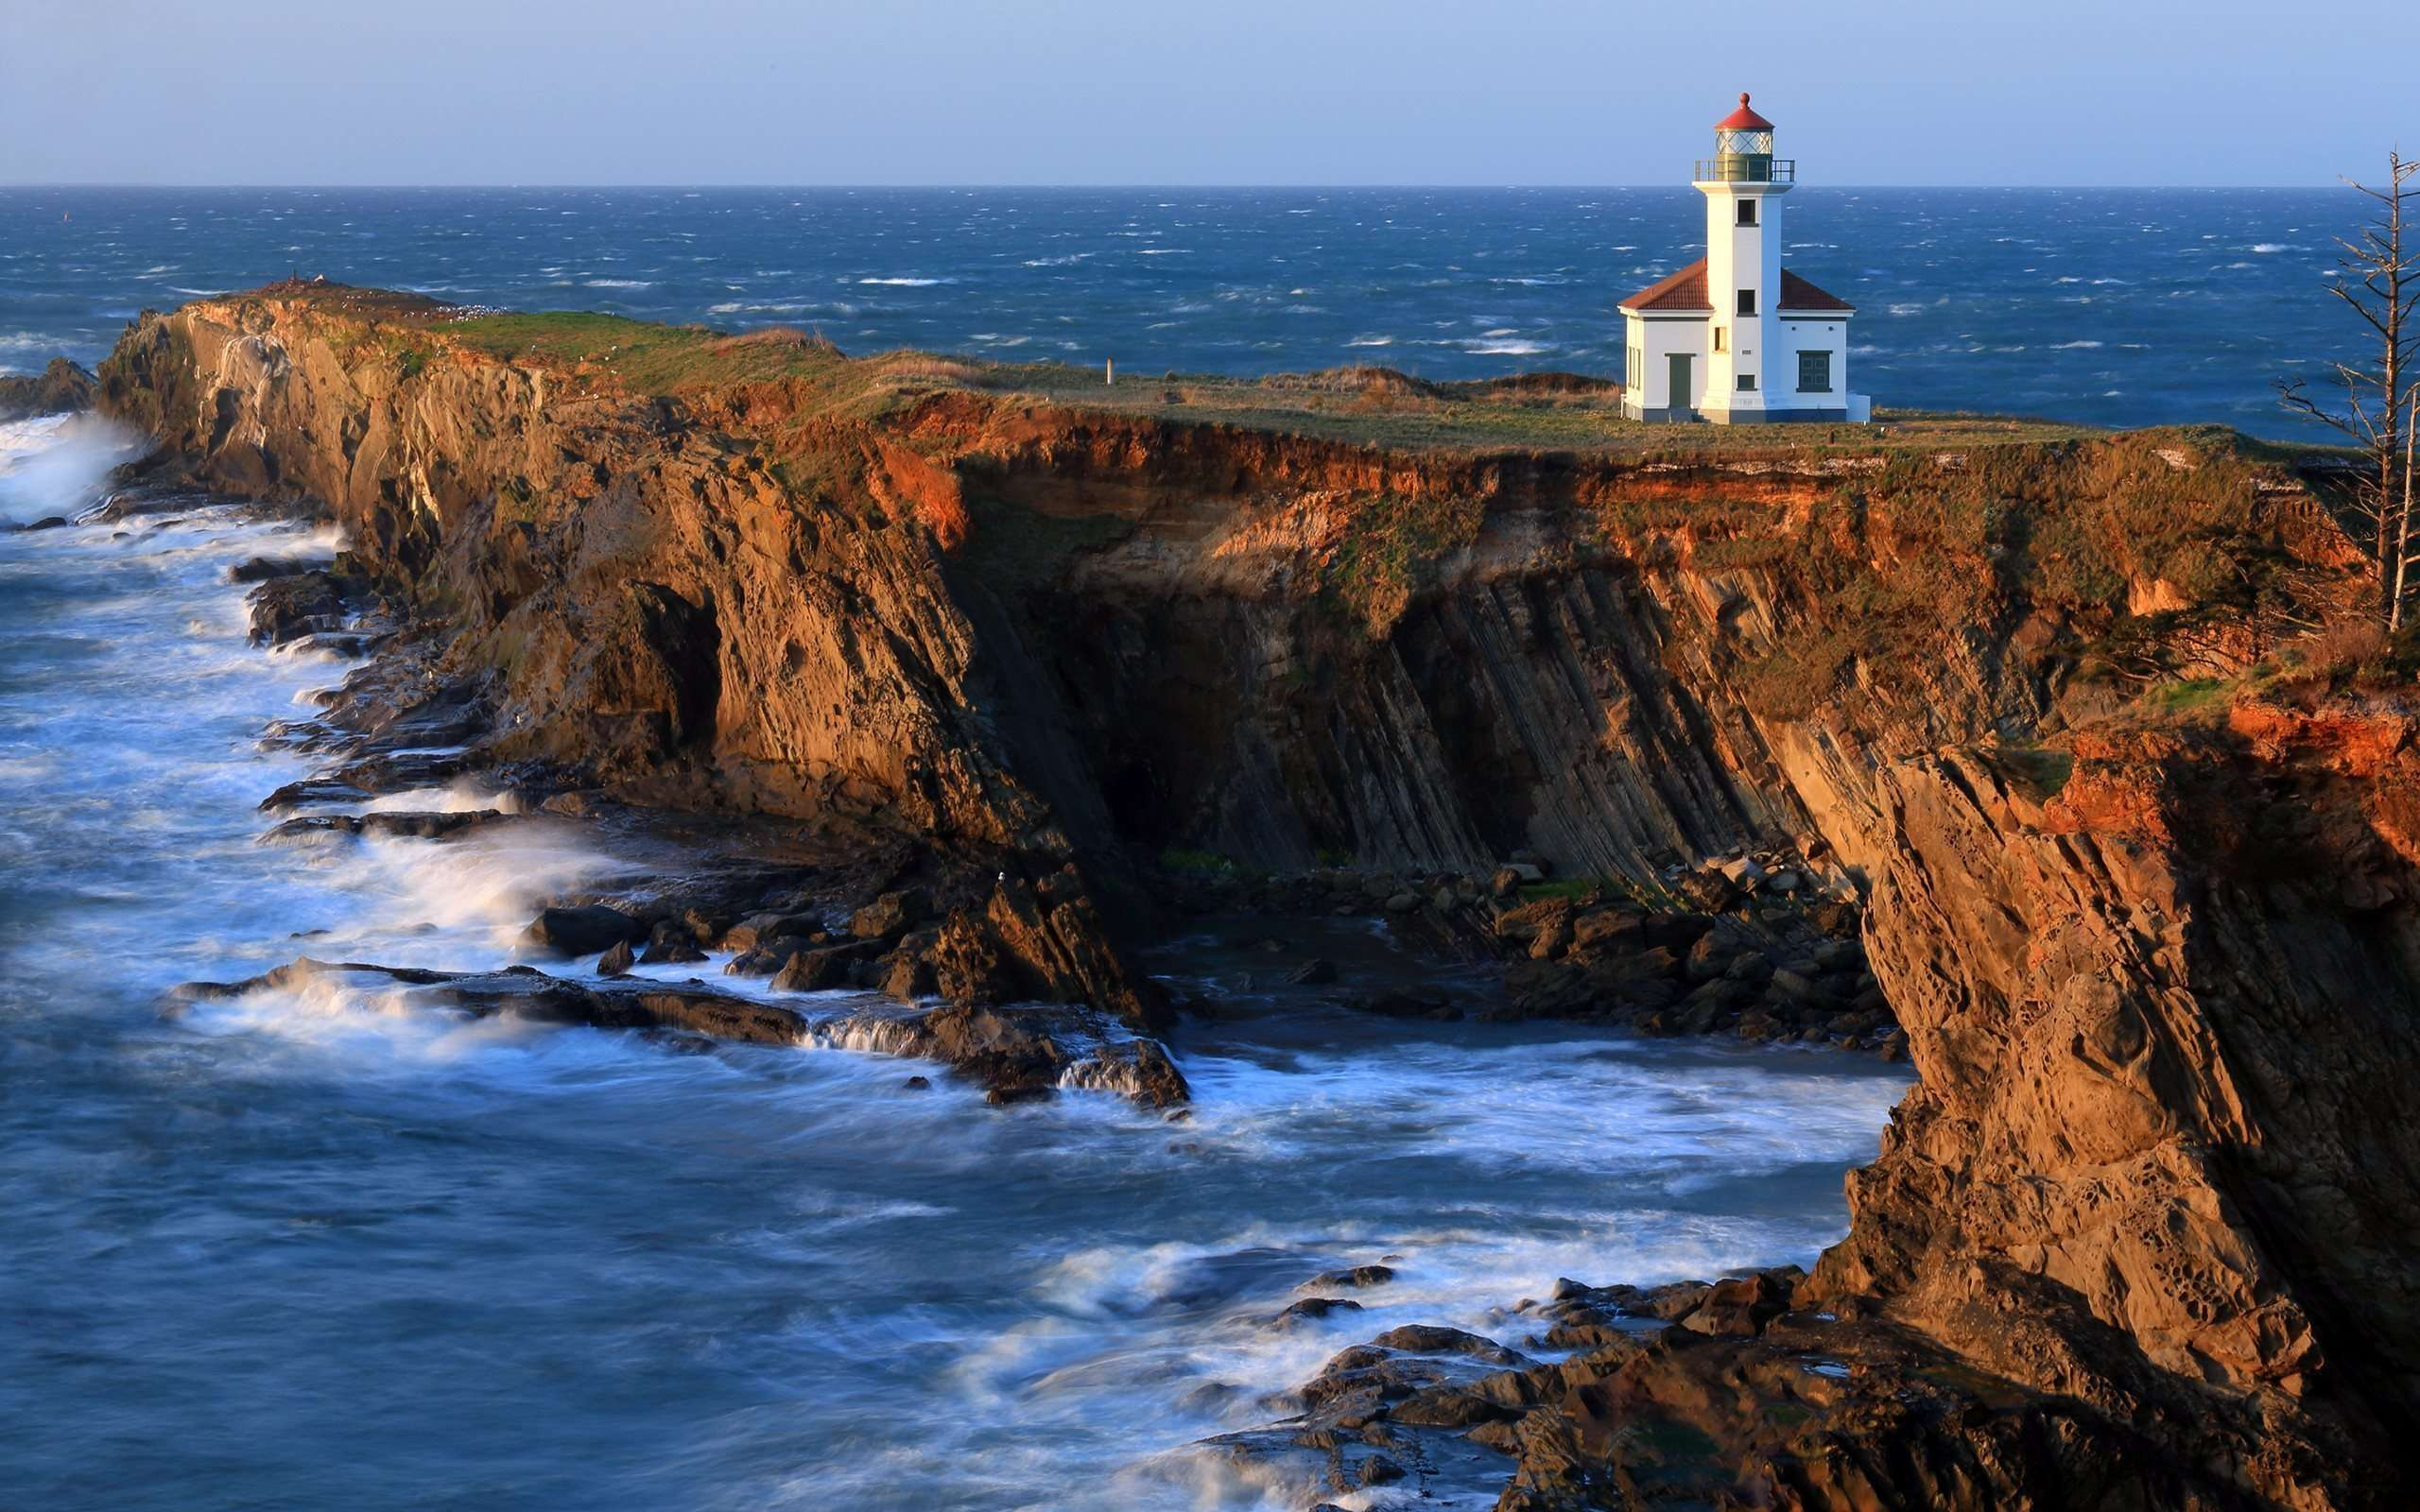 Cape Arago Lighthouse Wallpaper - Widescreen Wallpaper | HD ...